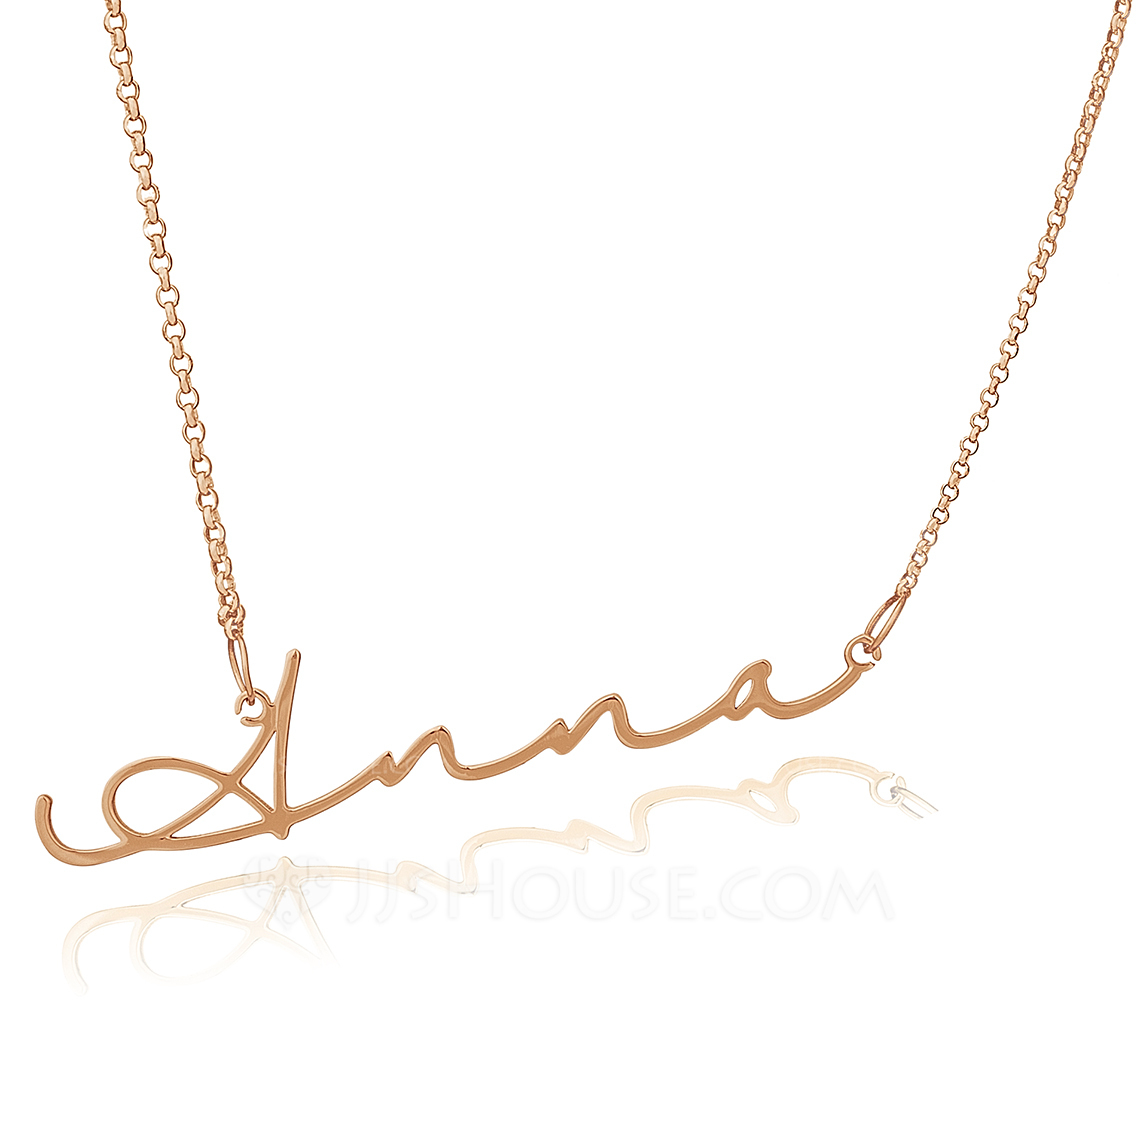 Custom 18k Rose Gold Plated Silver Signature Name Necklace - Birthday Gifts Mother's Day Gifts